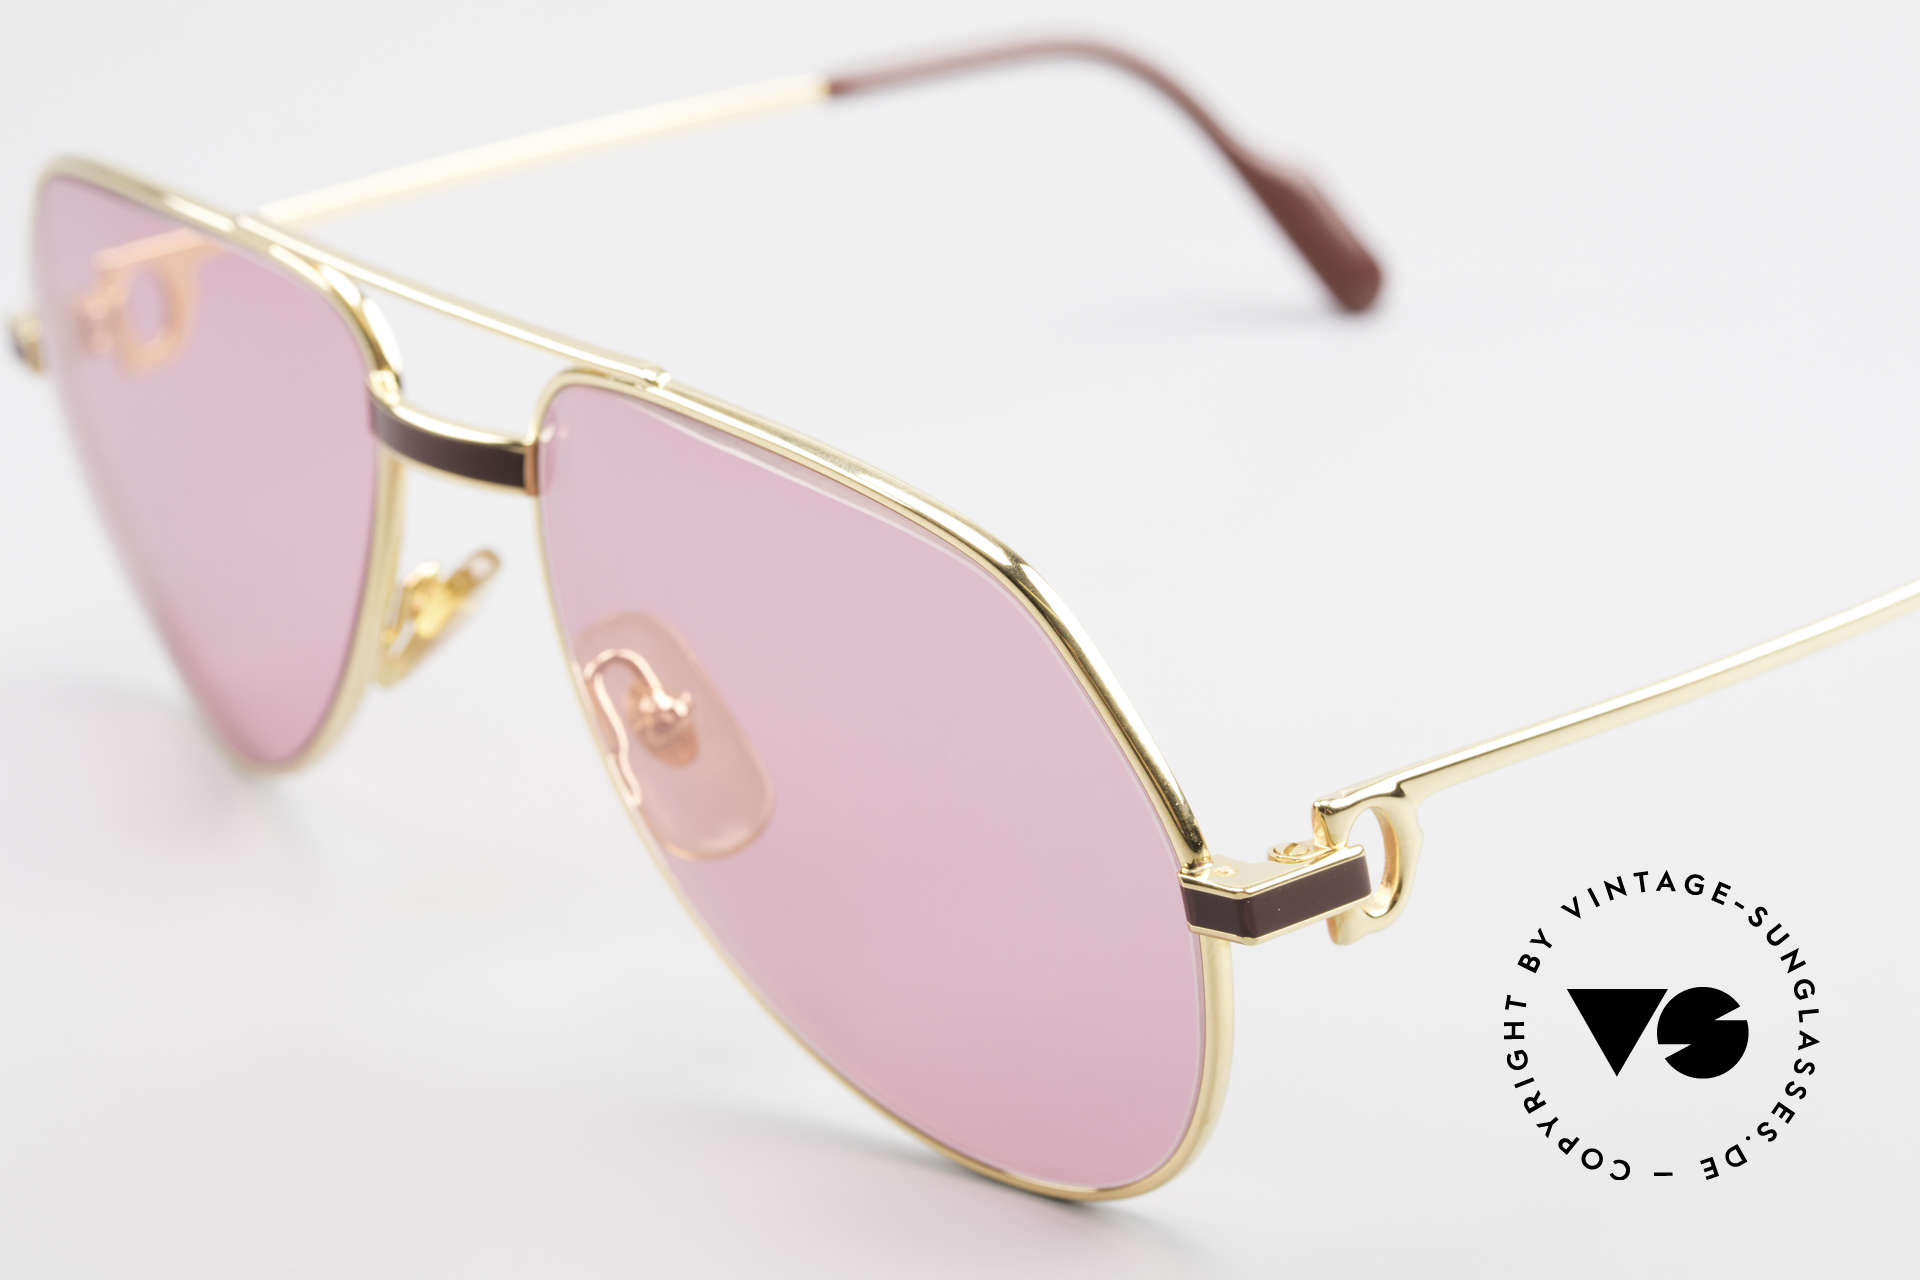 Cartier Vendome Laque - S 80's Luxury Sunglasses Pink, luxury frame (22ct gold-plated) with full orig. packing!, Made for Men and Women